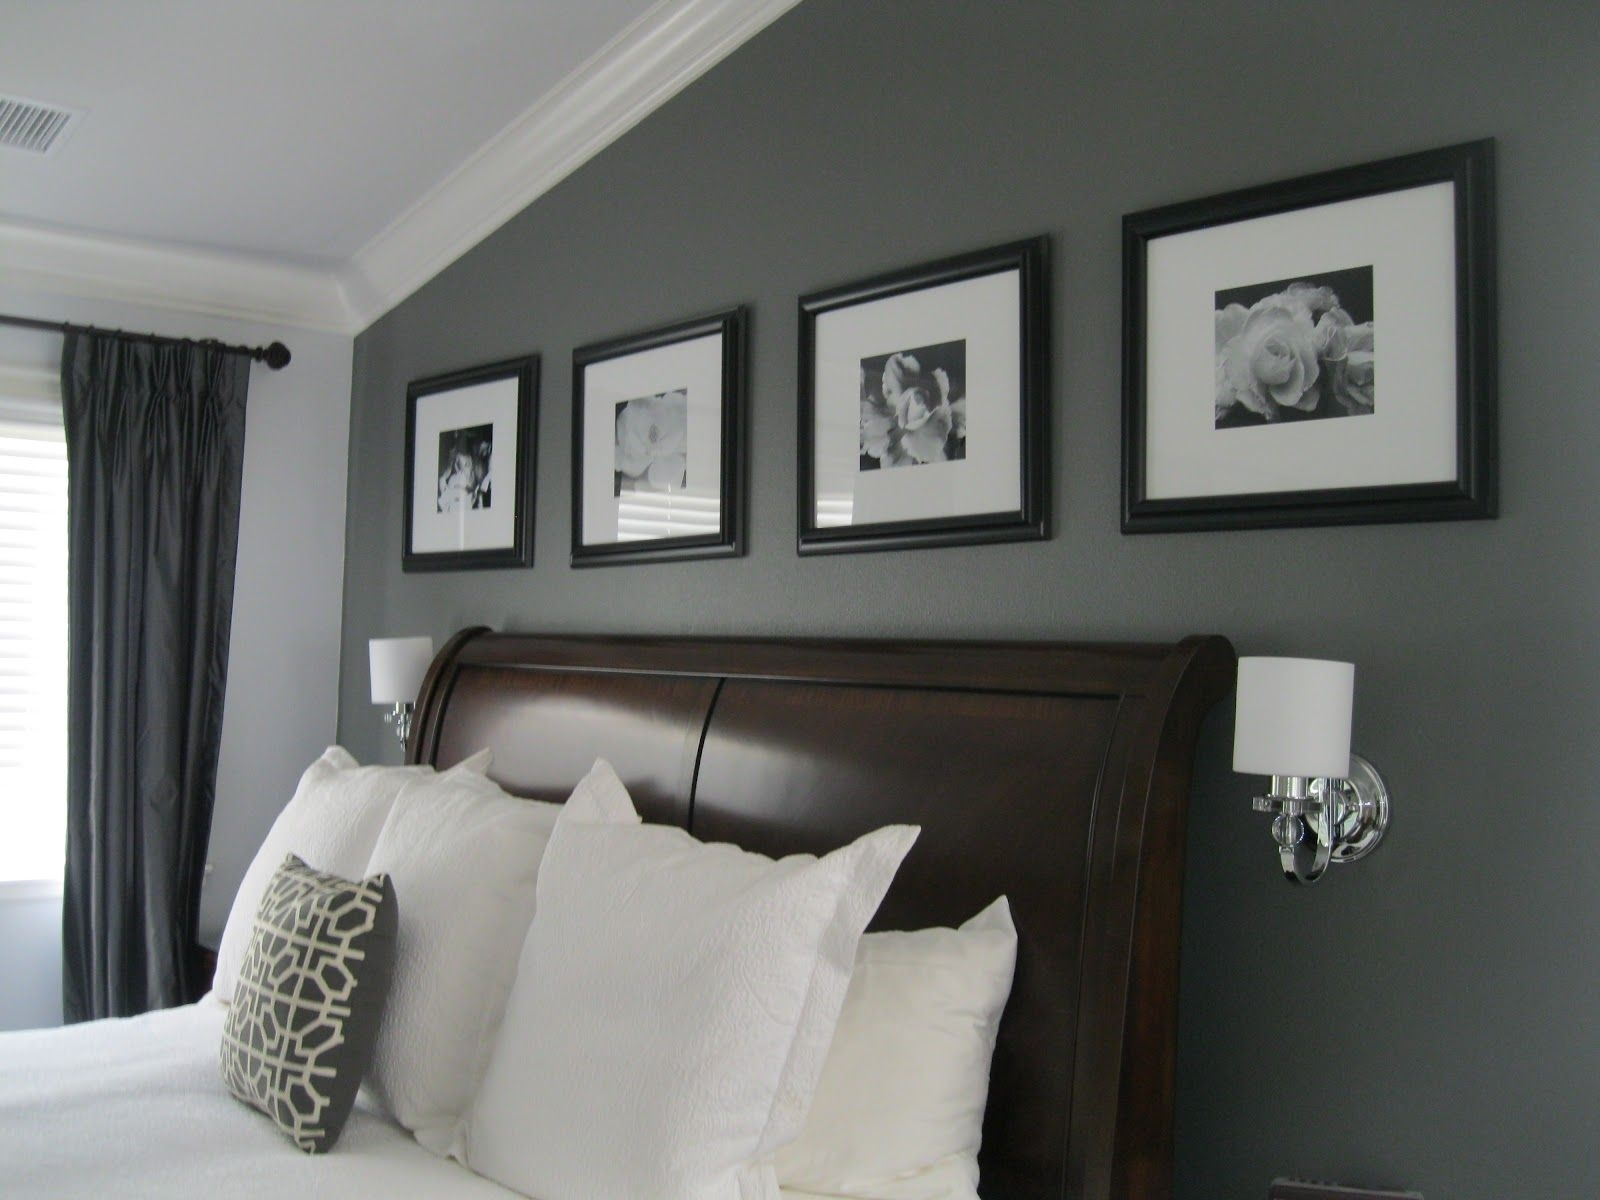 Legendary Gray – Dunn Edward. I Like The Grey Accent Wall With Throughout Best And Newest Grey And White Wall Accents (Gallery 11 of 15)